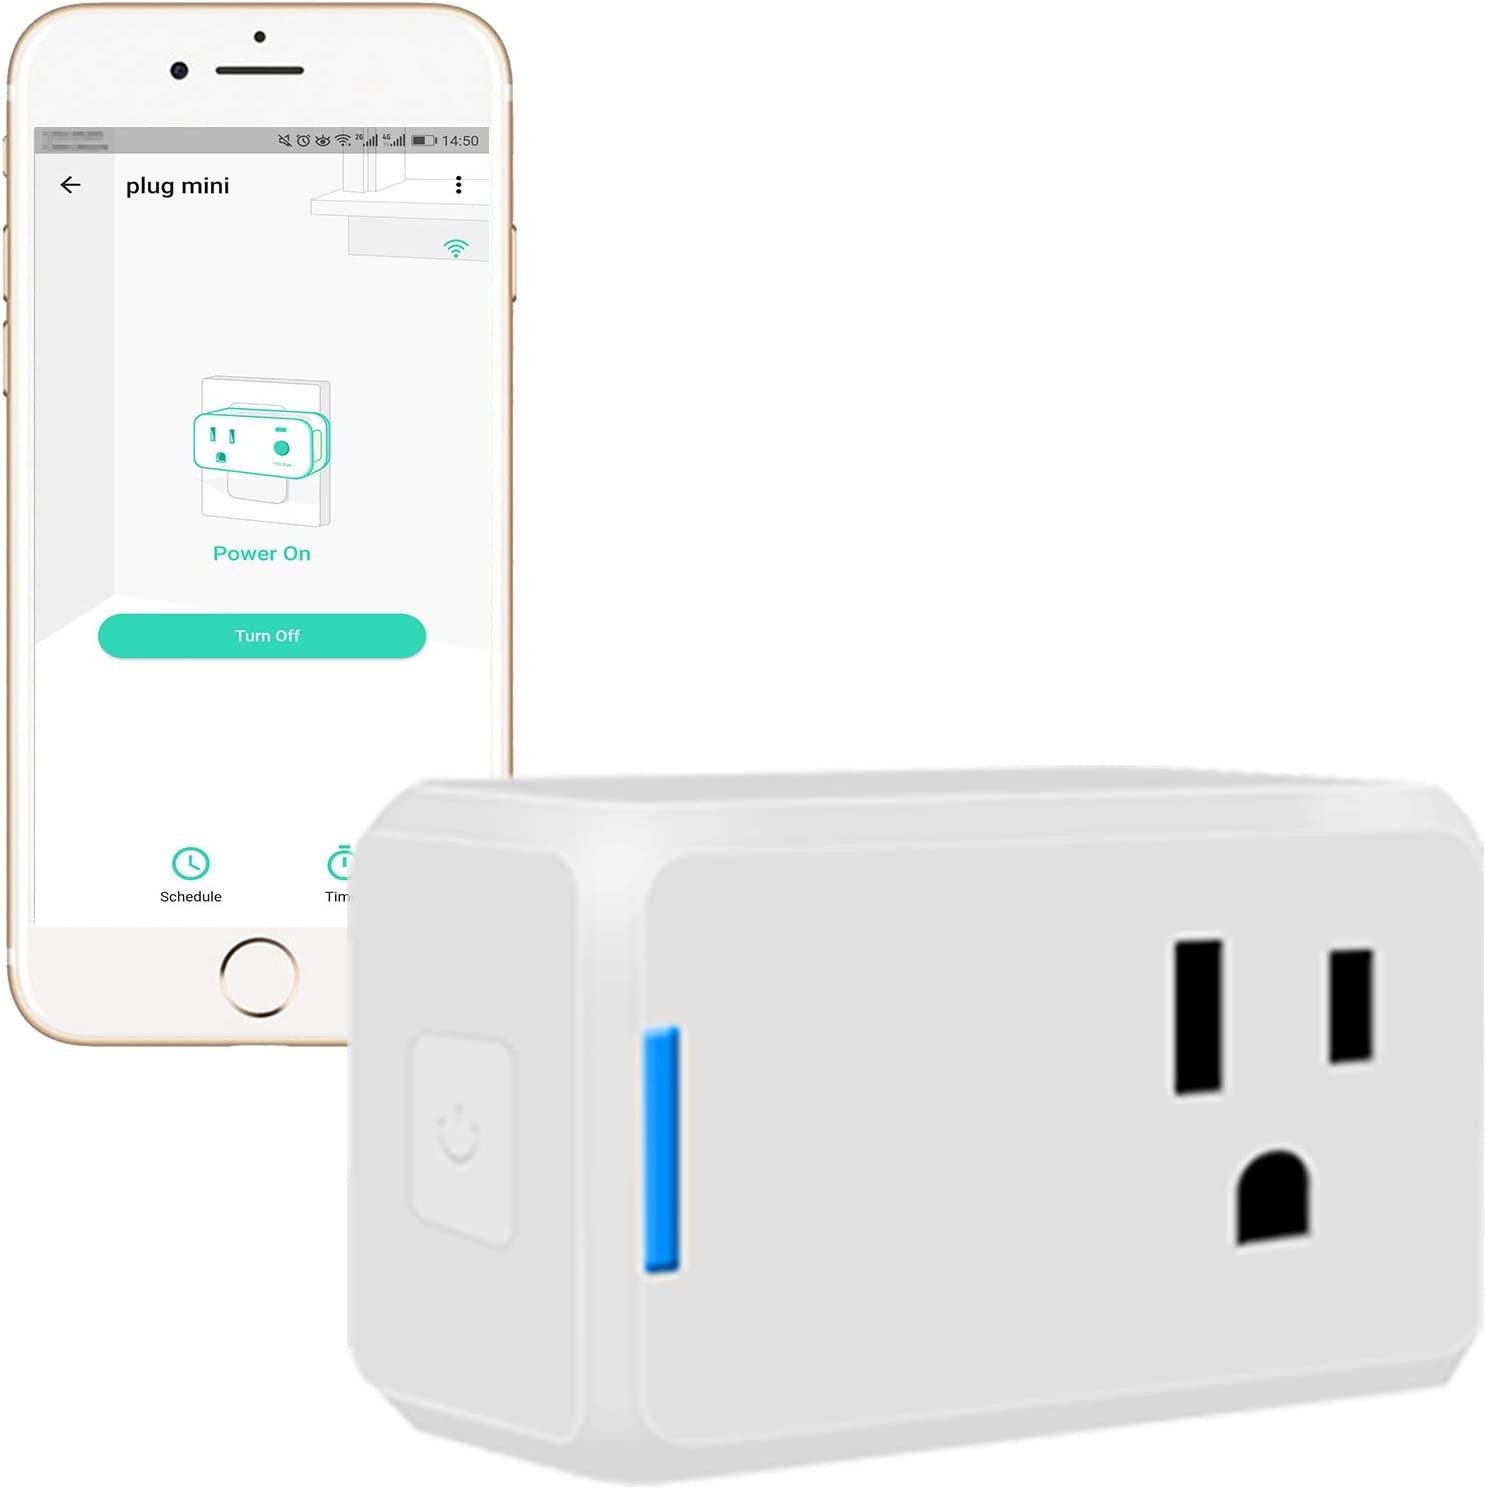 YoLink Mini Plug, 1/4 Mile World's Longest Range Smart Home Plug Mini Outlet Works with Alexa Google Assistant IFTTT App Remote Control Home Appliances from Anywhere- YoLink Hub Required